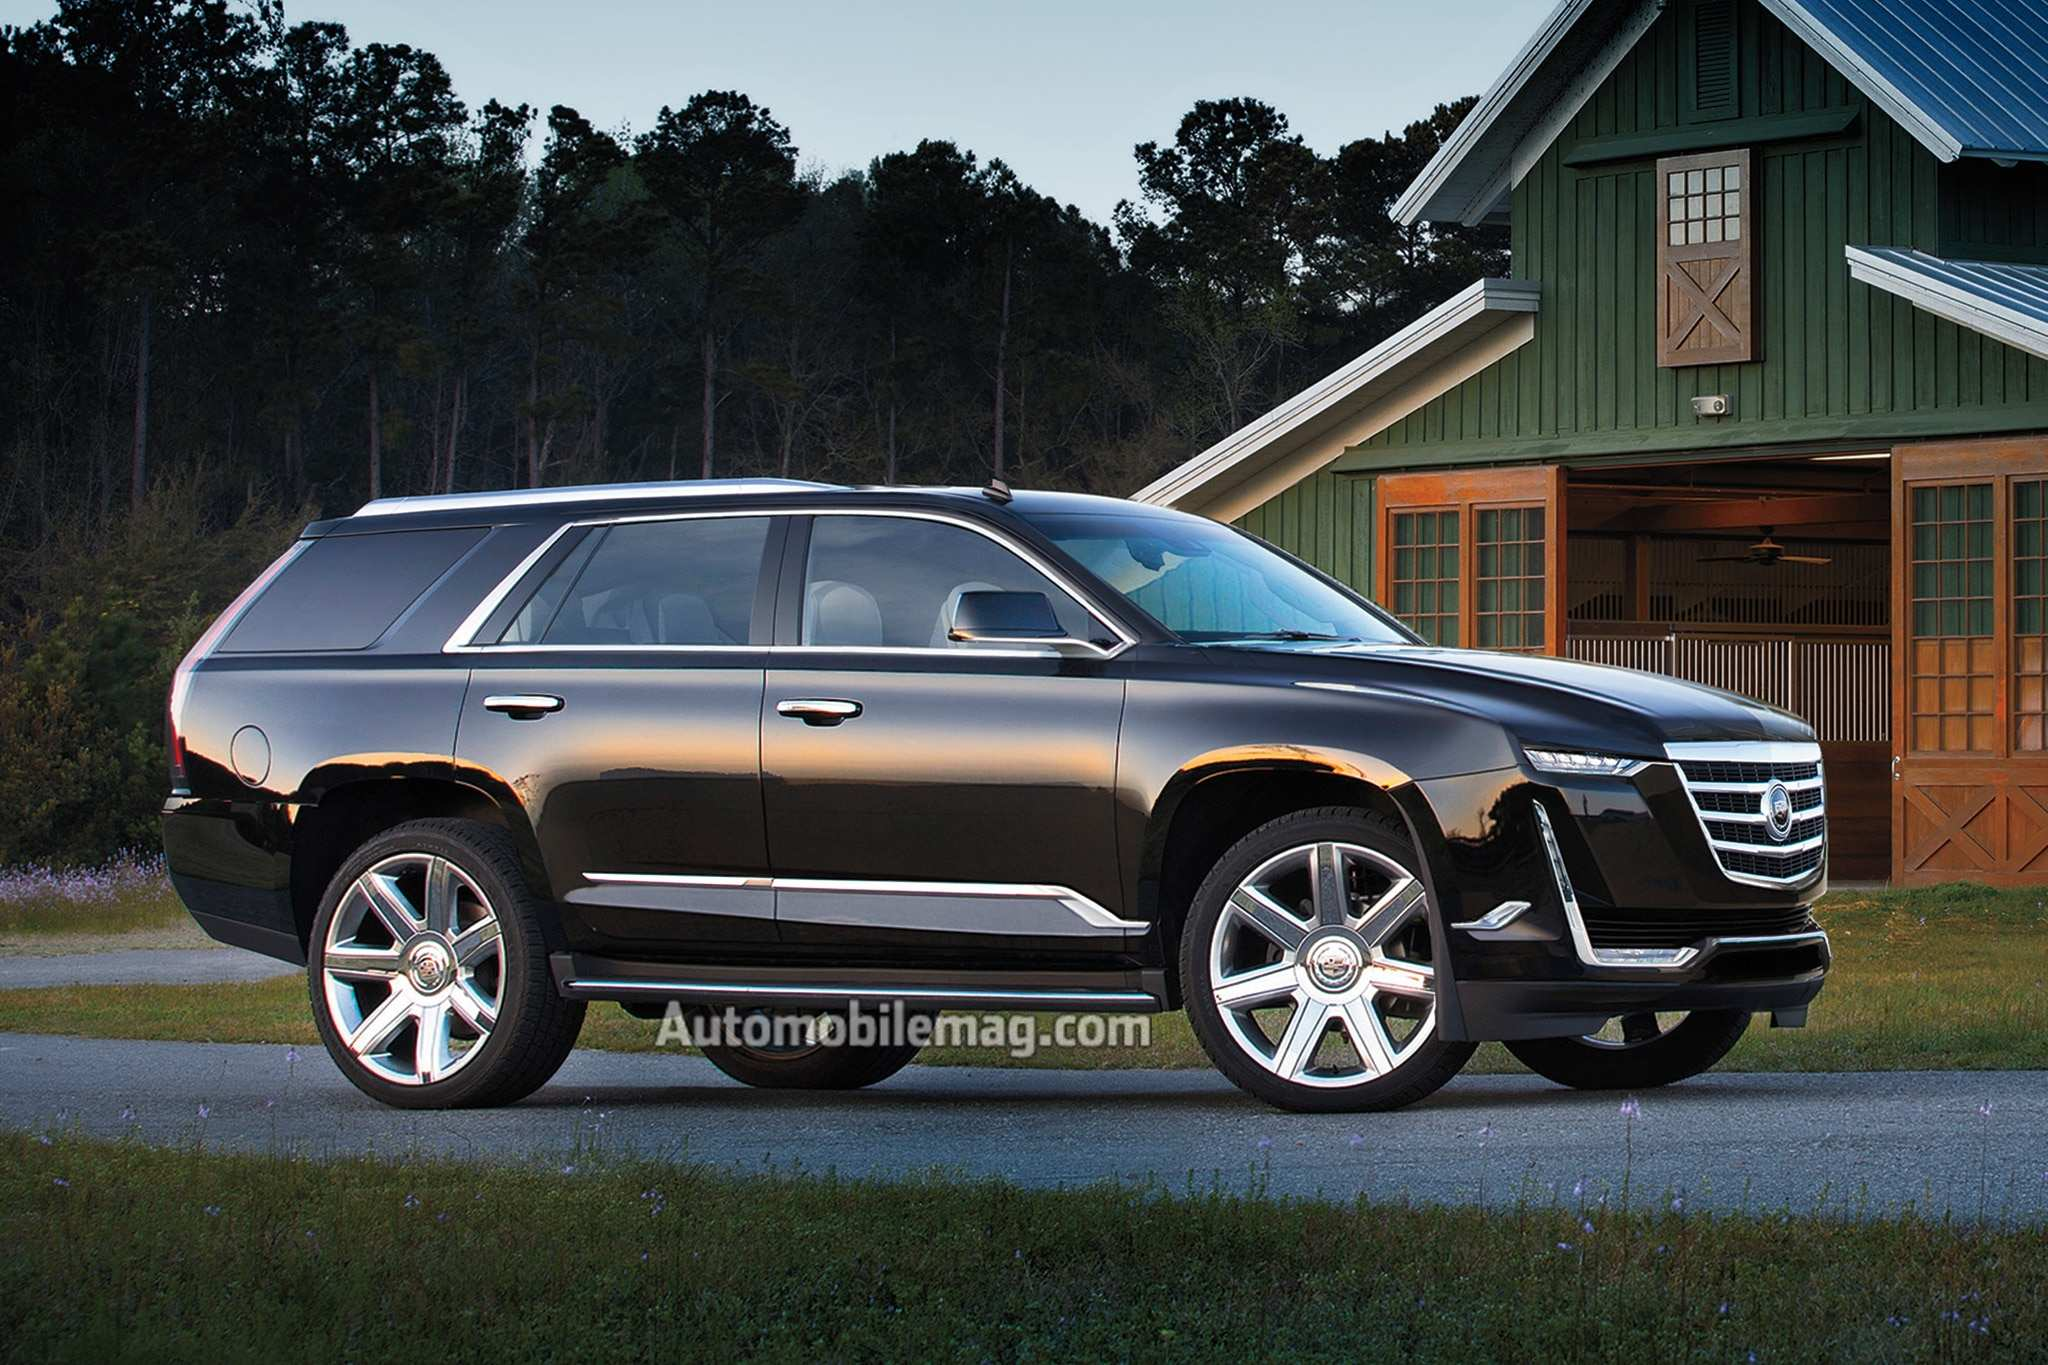 38 Gallery of 2020 Cadillac Escalade Body Style Change Performance and New Engine with 2020 Cadillac Escalade Body Style Change